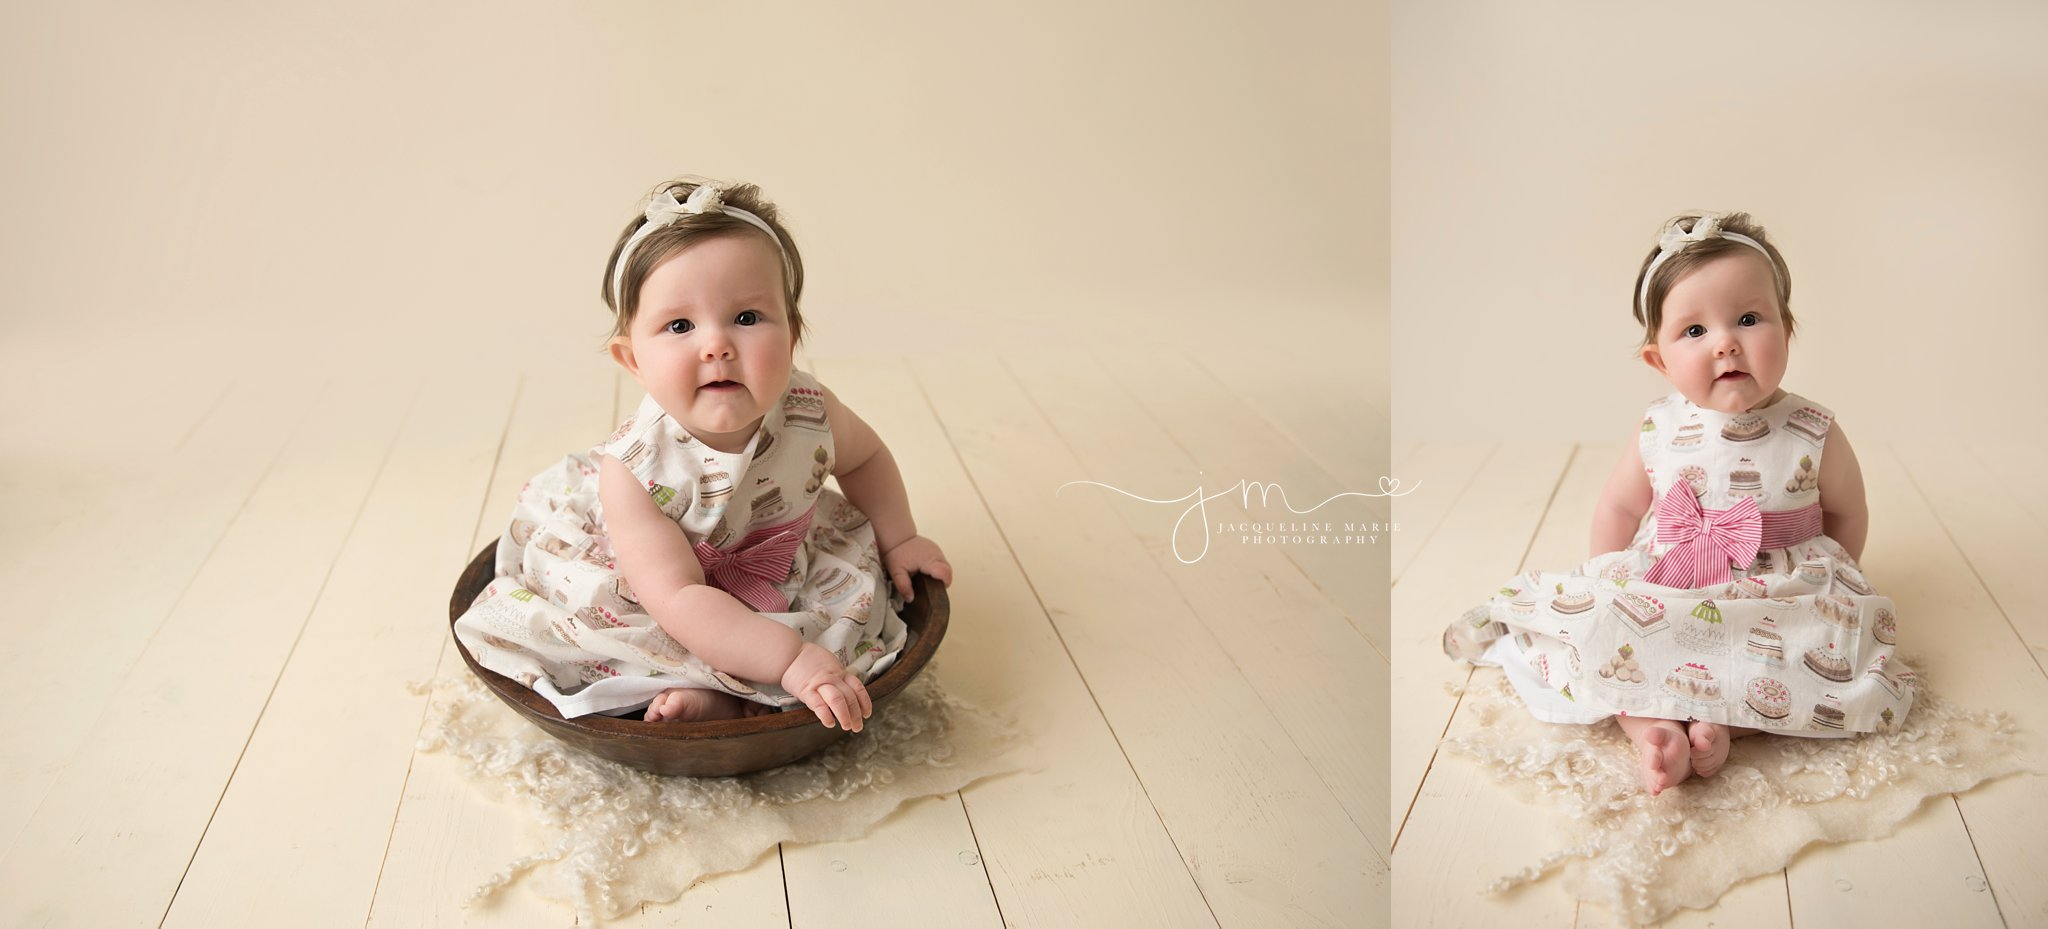 6 month old baby sits in wooden bowl and wears dress with cupcakes on it in columbus ohio for baby milestone pictures